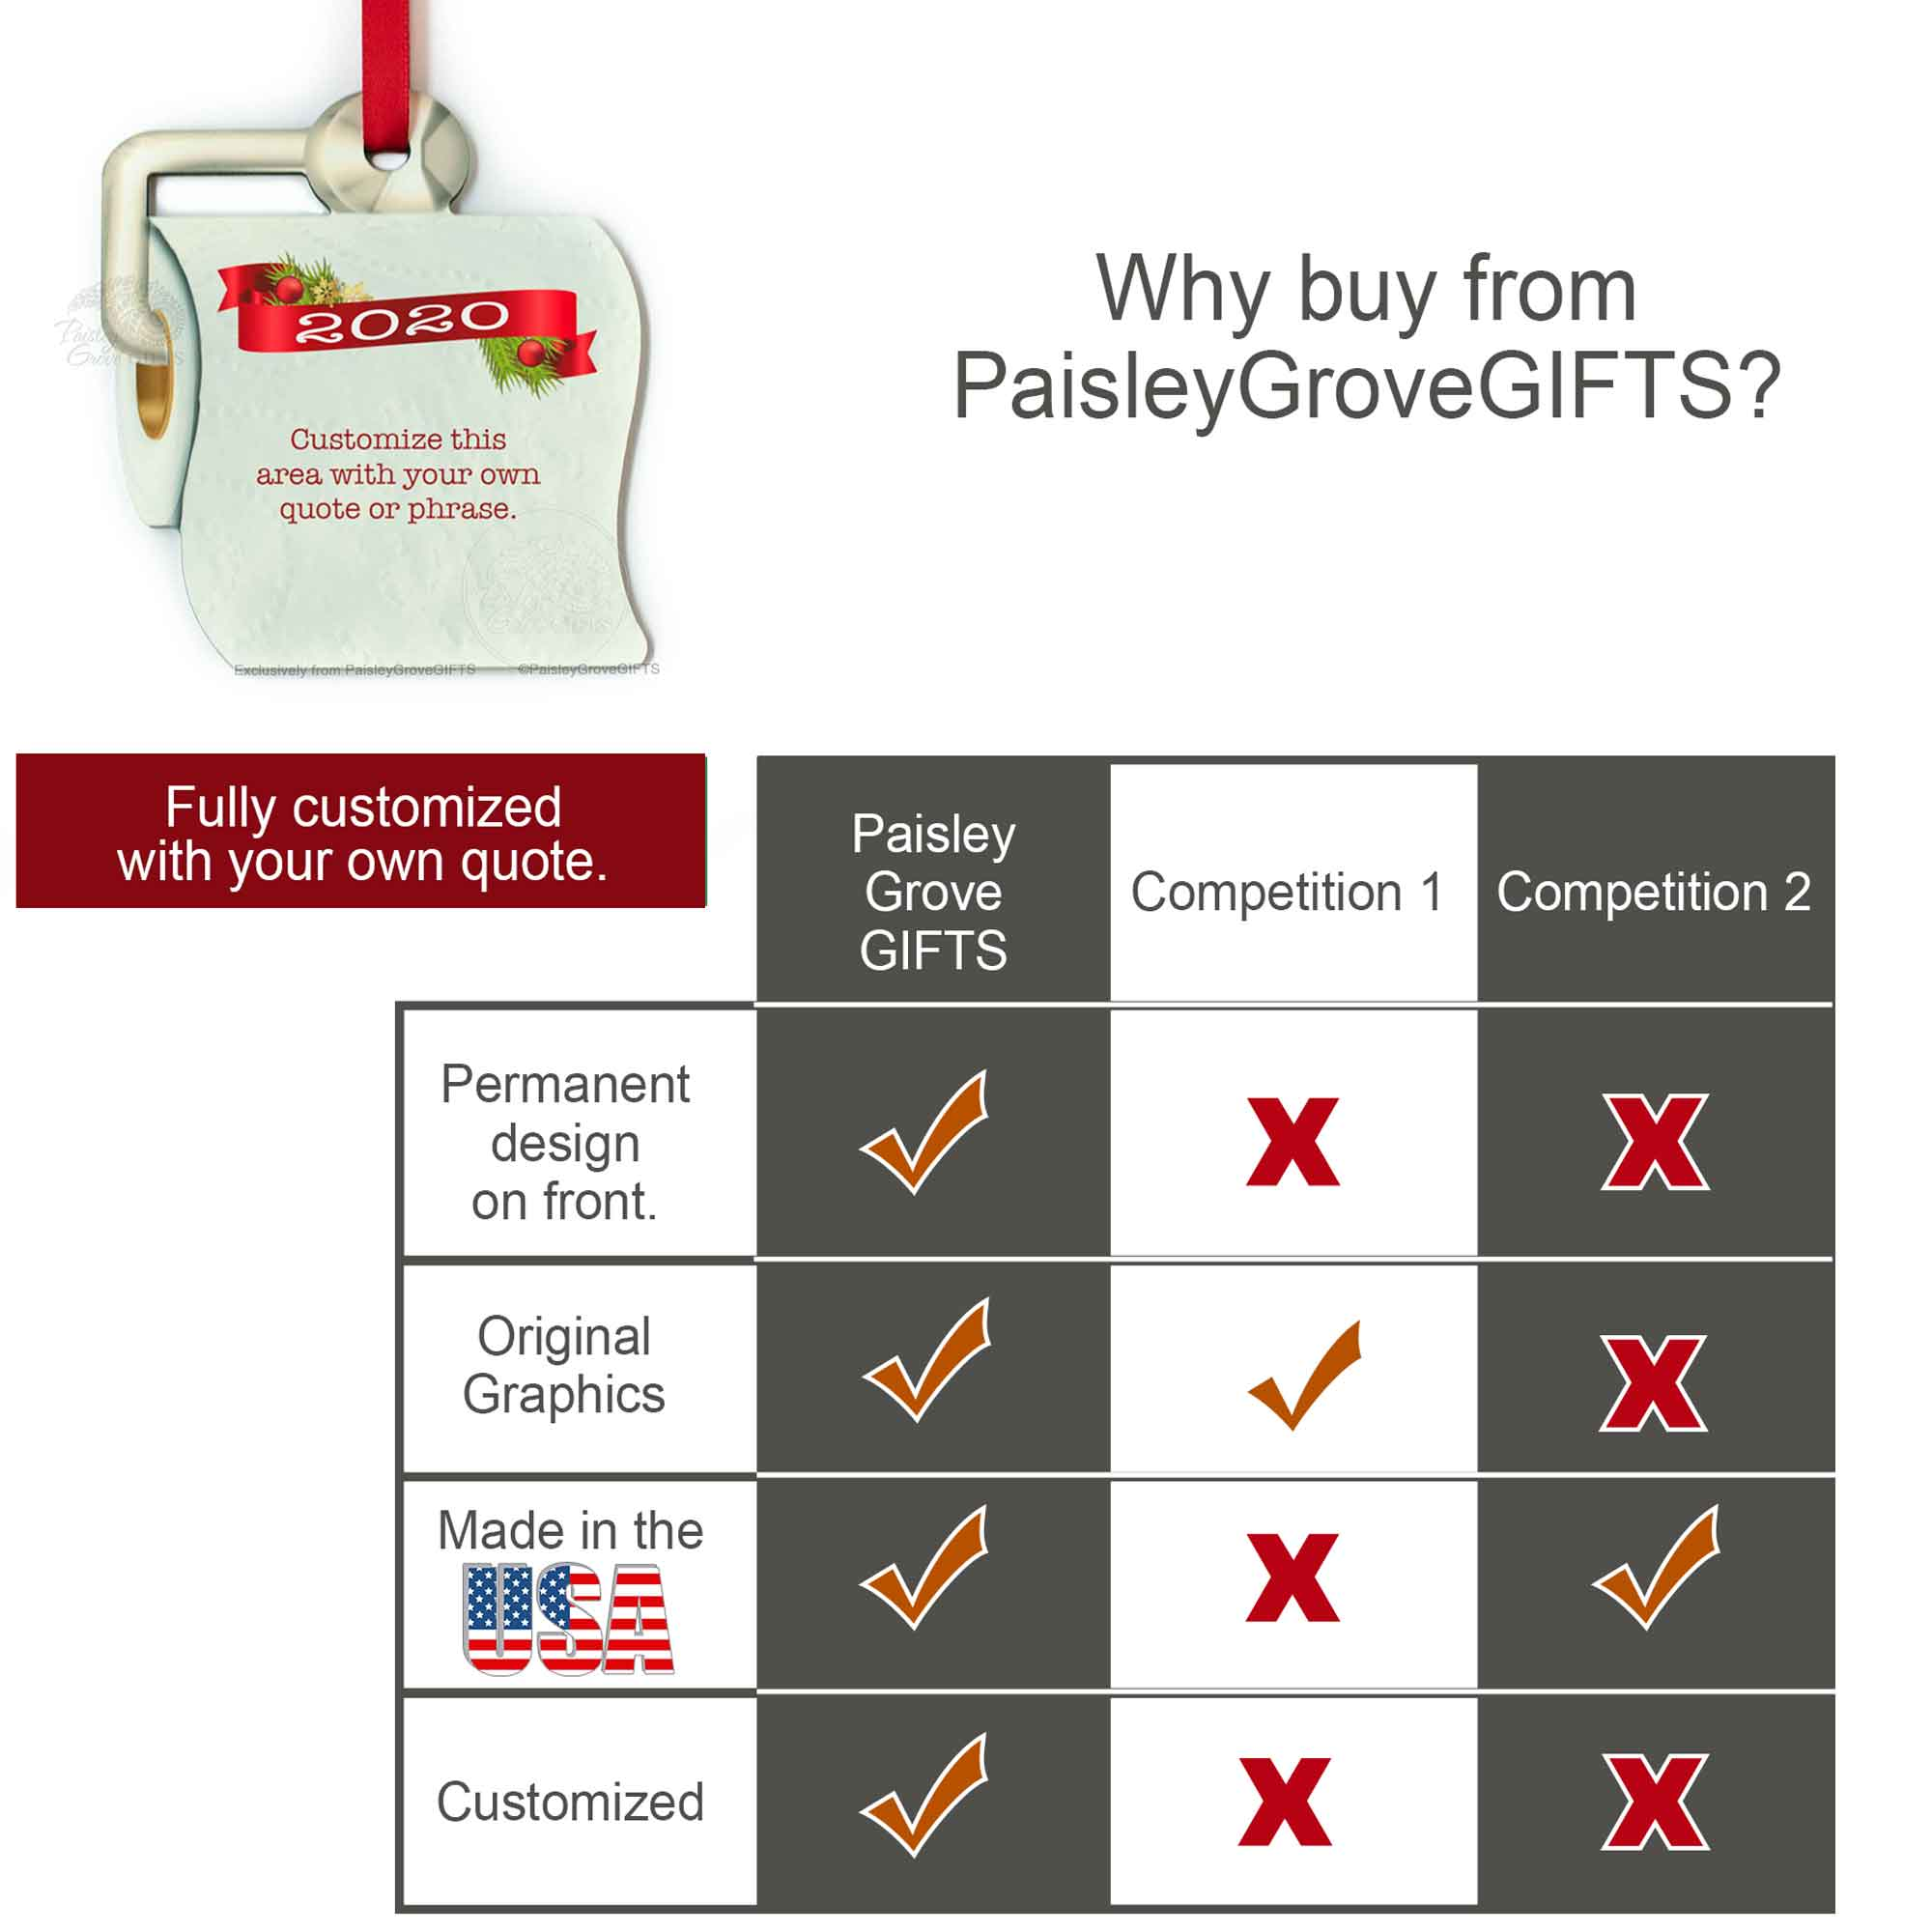 CopyrightPaisleyGroveGIFTS S525p Quality Ornament Superior to Others, Comparison Chart for Toilet Paper Ornament